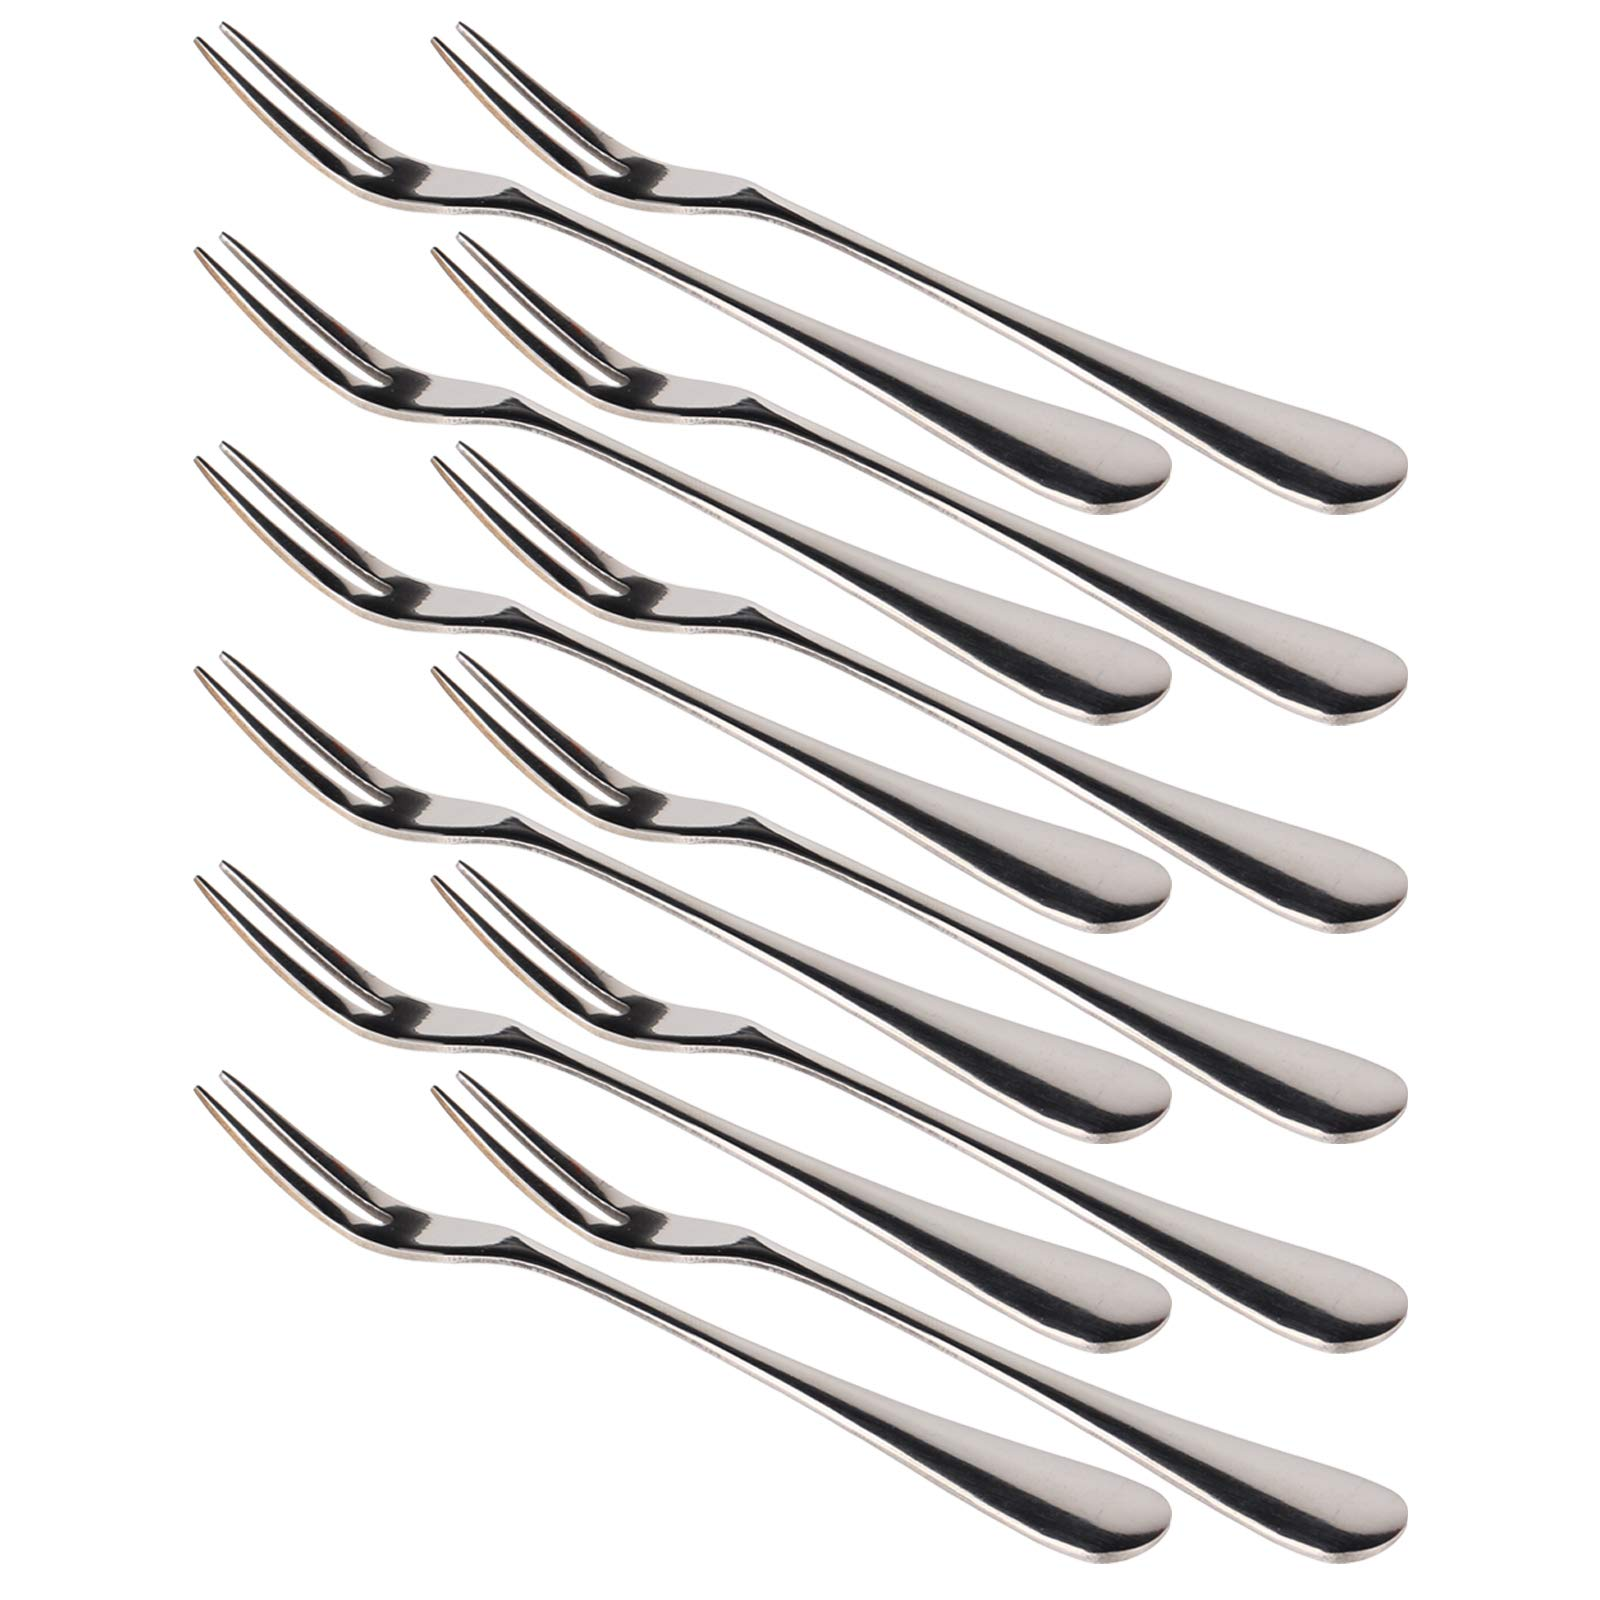 WARMBUY Small Stainless Steel Forks for Cocktail Appetizer Dessert Party, Set of 12